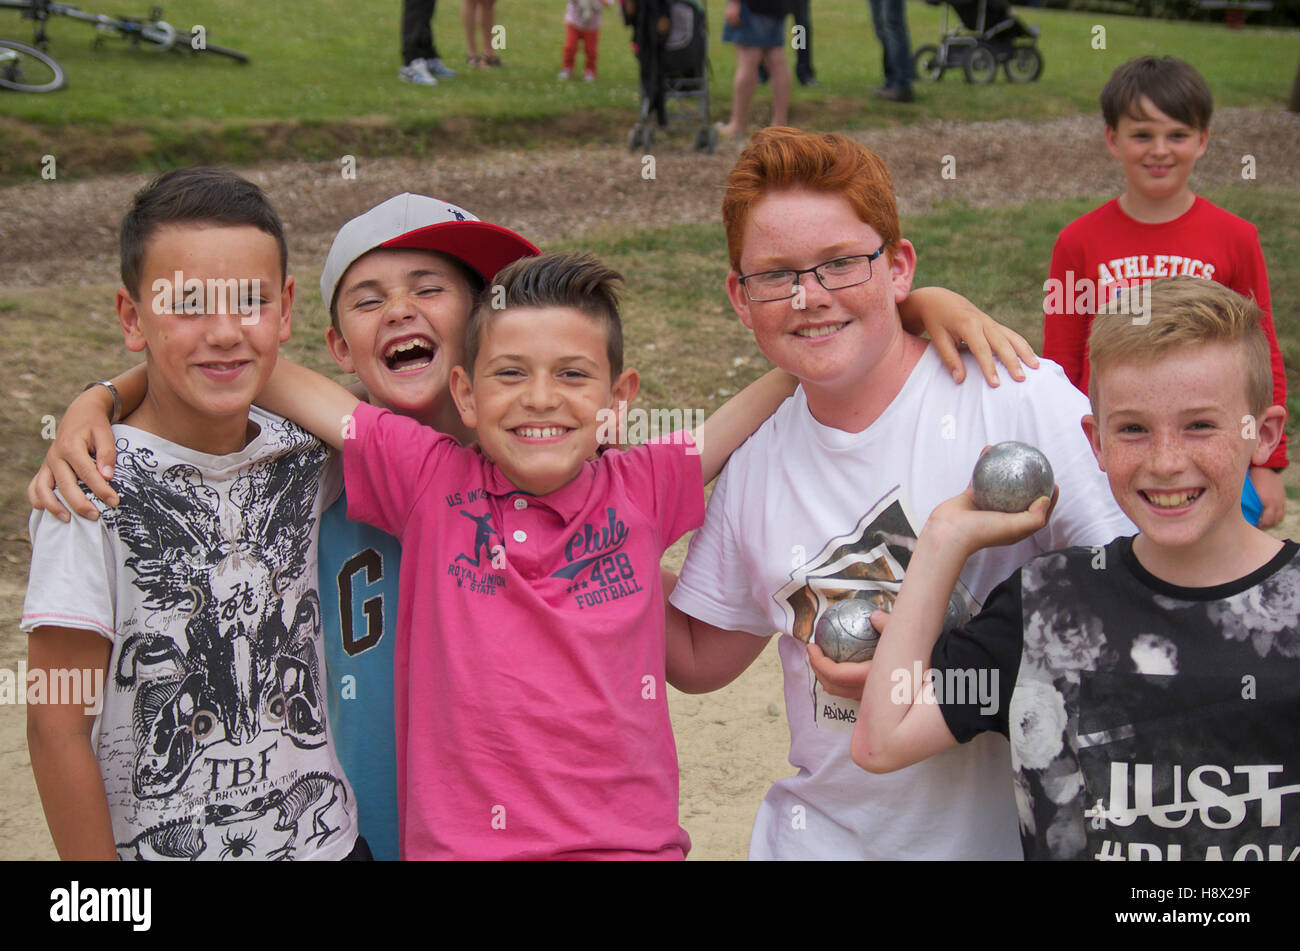 Group of happy Breton children at a petanque game - Stock Image